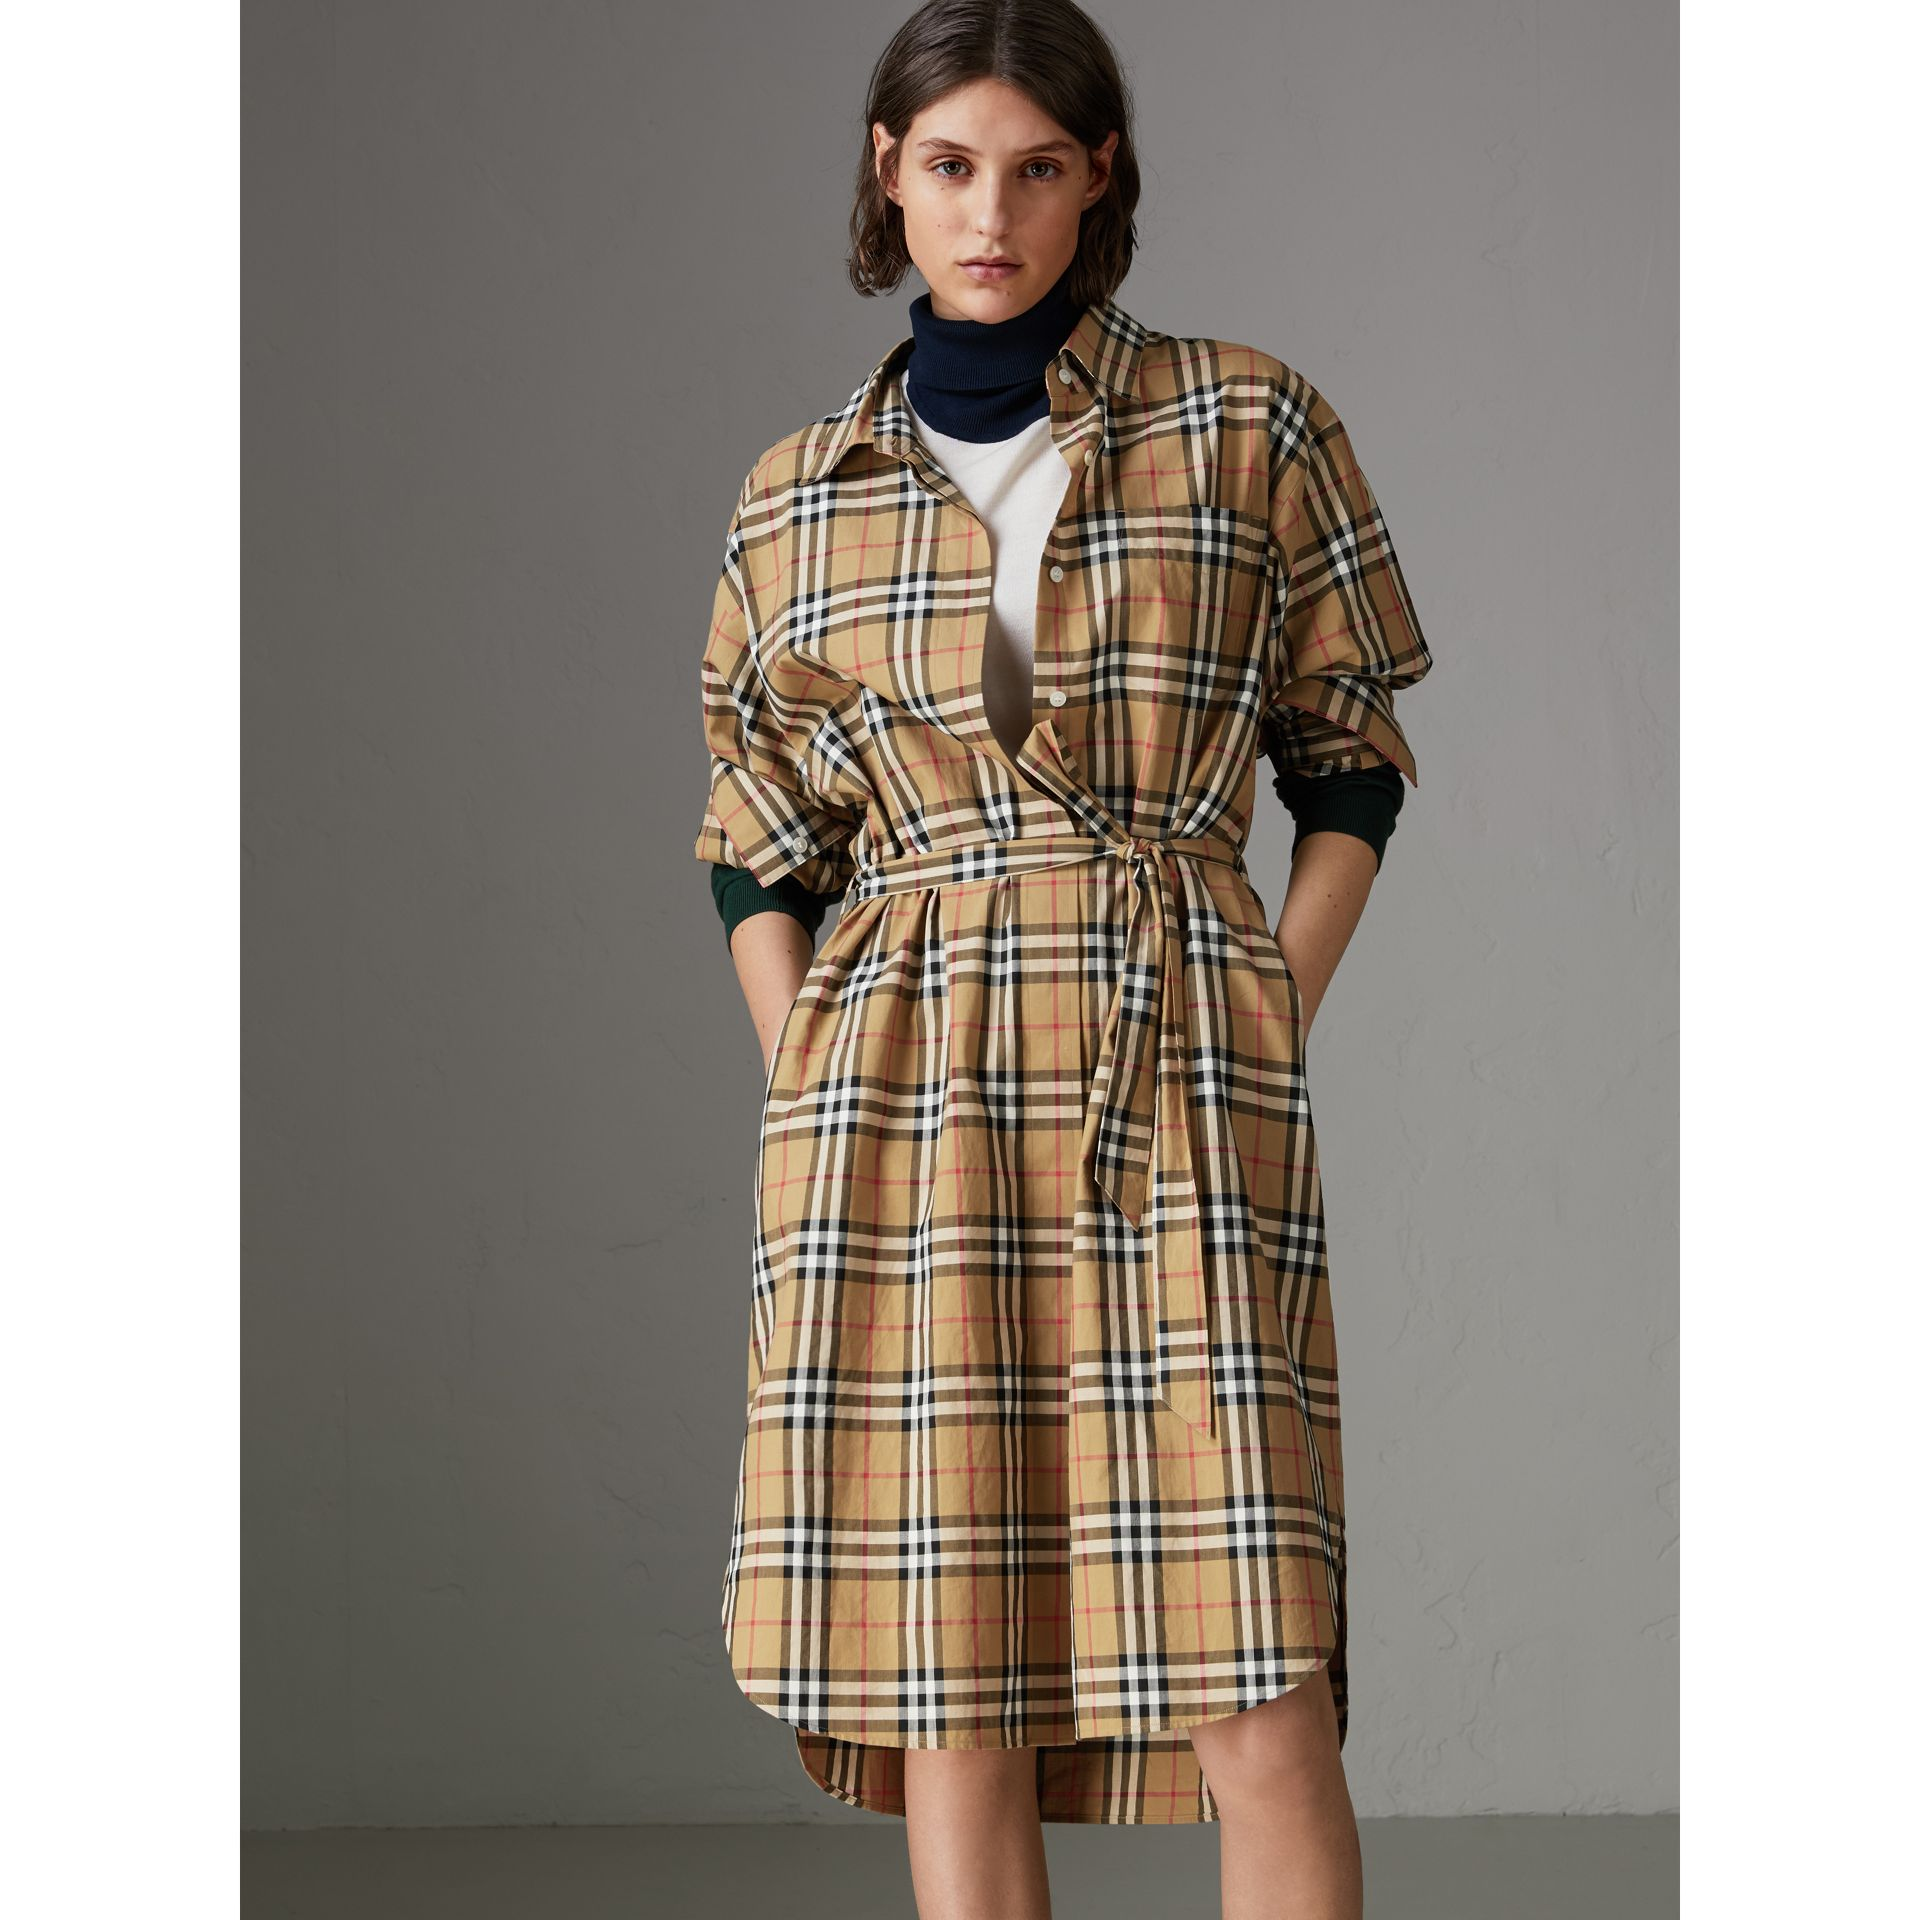 Tie-waist Vintage Check Cotton Shirt Dress in Antique Yellow - Women | Burberry United Kingdom - gallery image 3